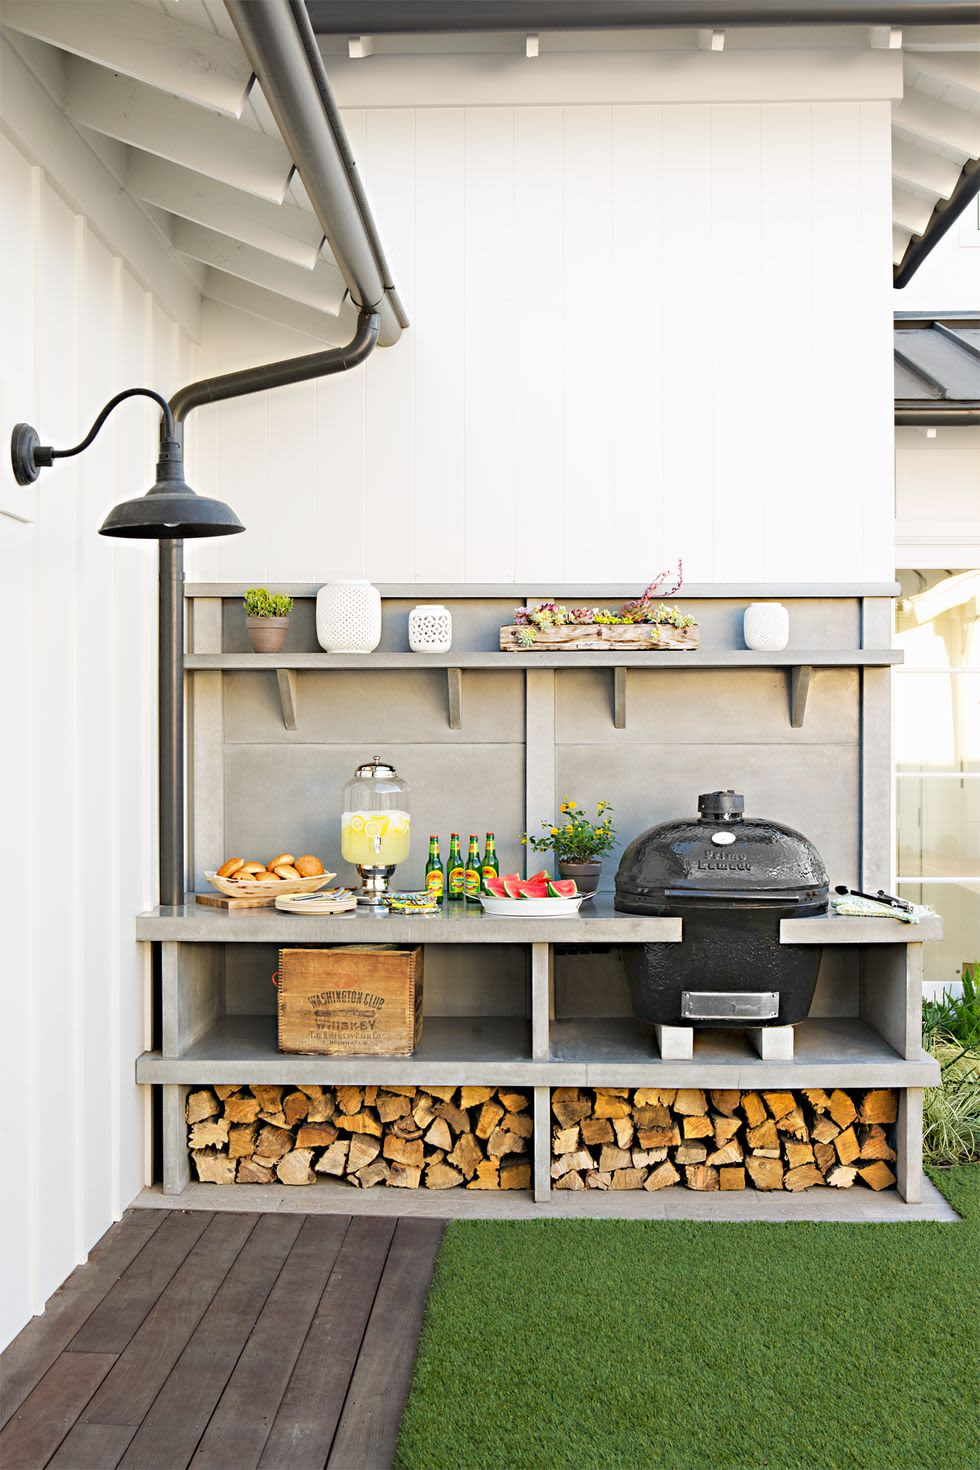 30 Outdoor Kitchen Ideas & Inspirations | Apartment Therapy on jamaican kitchen designs, 2013 best kitchen designs, candice olson kitchen designs, home kitchen designs, best gourmet kitchen designs, ultimate outdoor kitchen designs, 1920s kitchen designs, dream kitchen designs, ultimate kitchen layout,